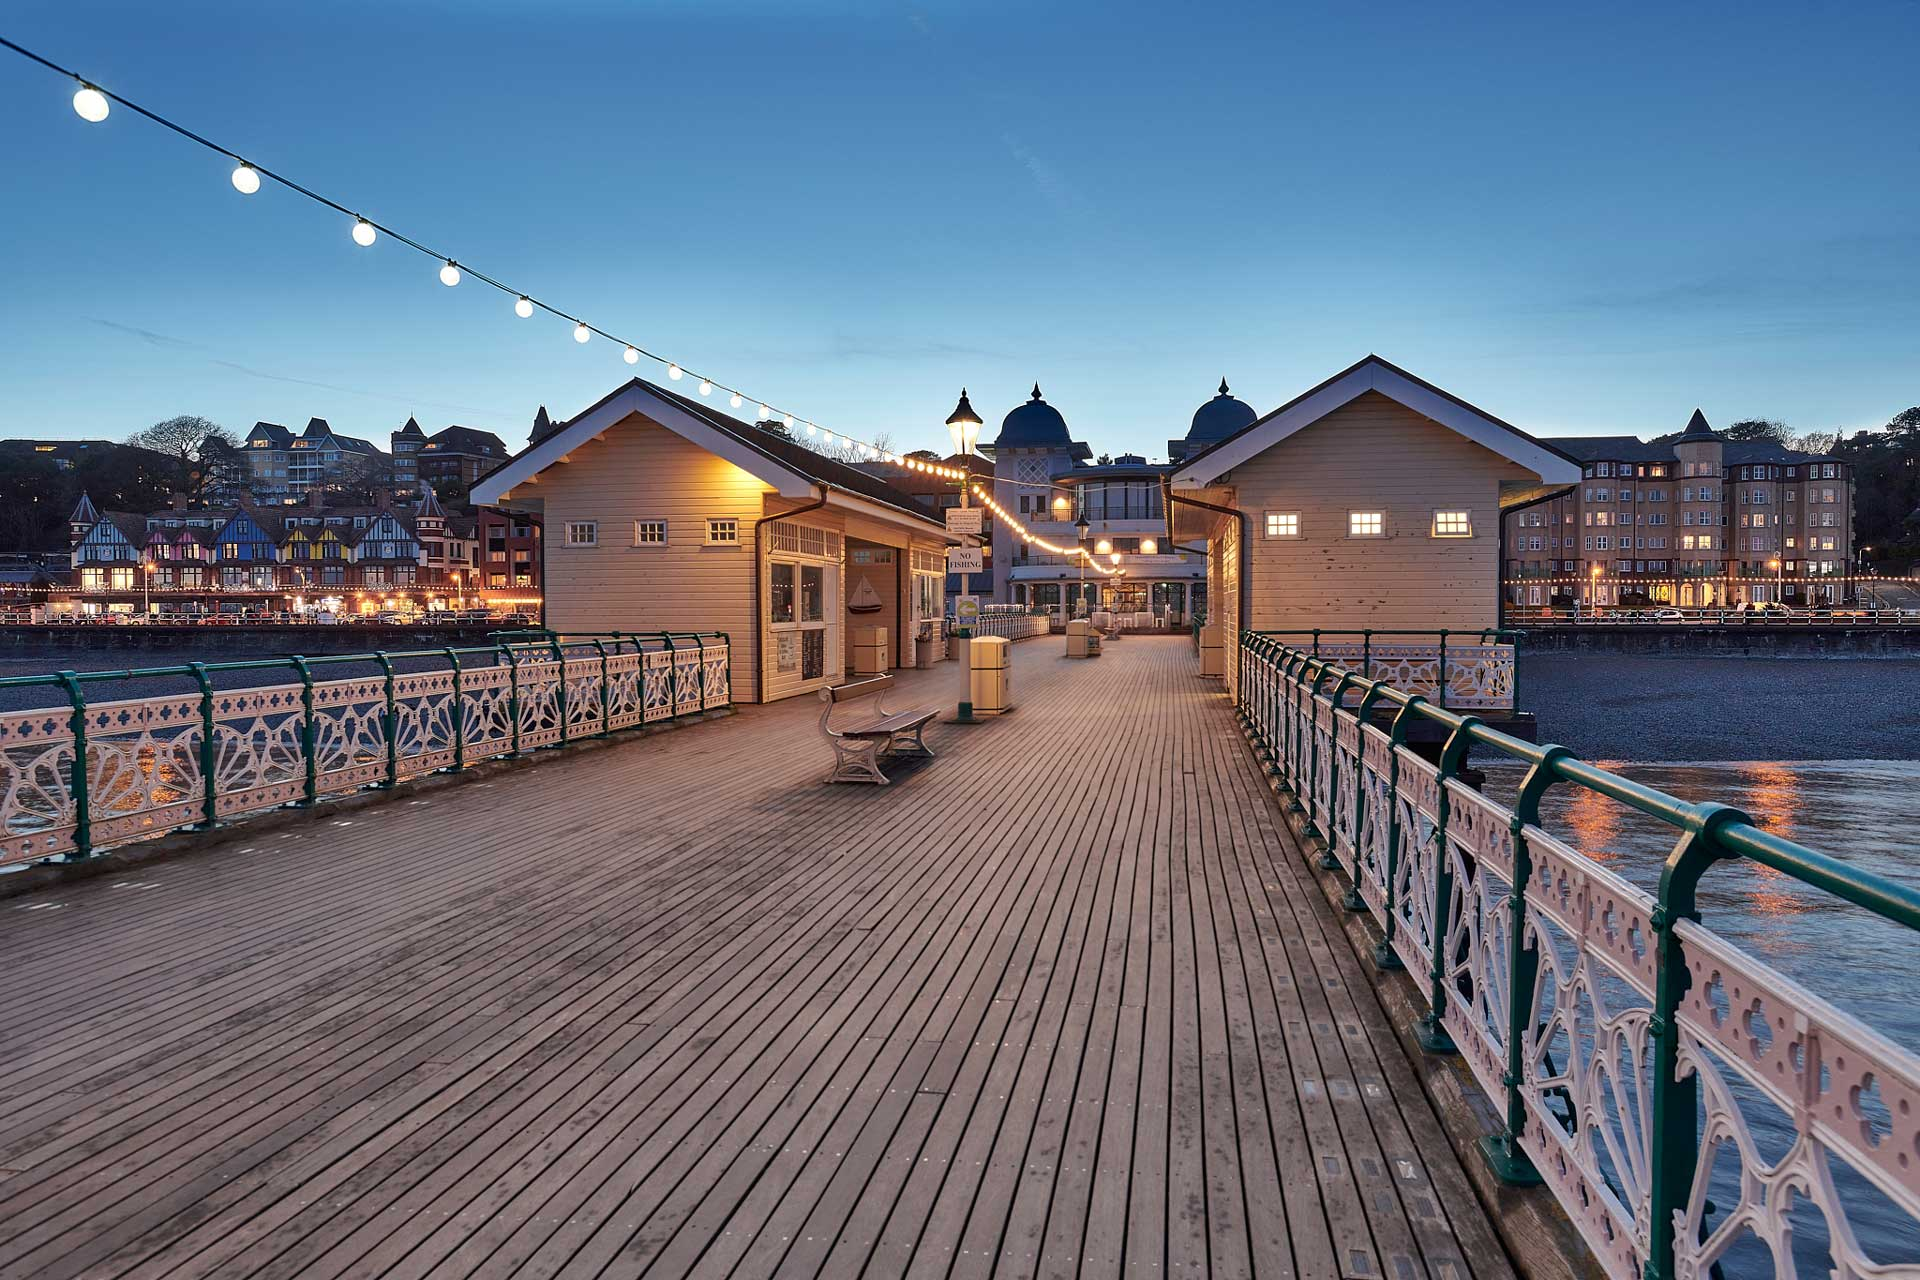 Looking back at Penarth from the end of the pier